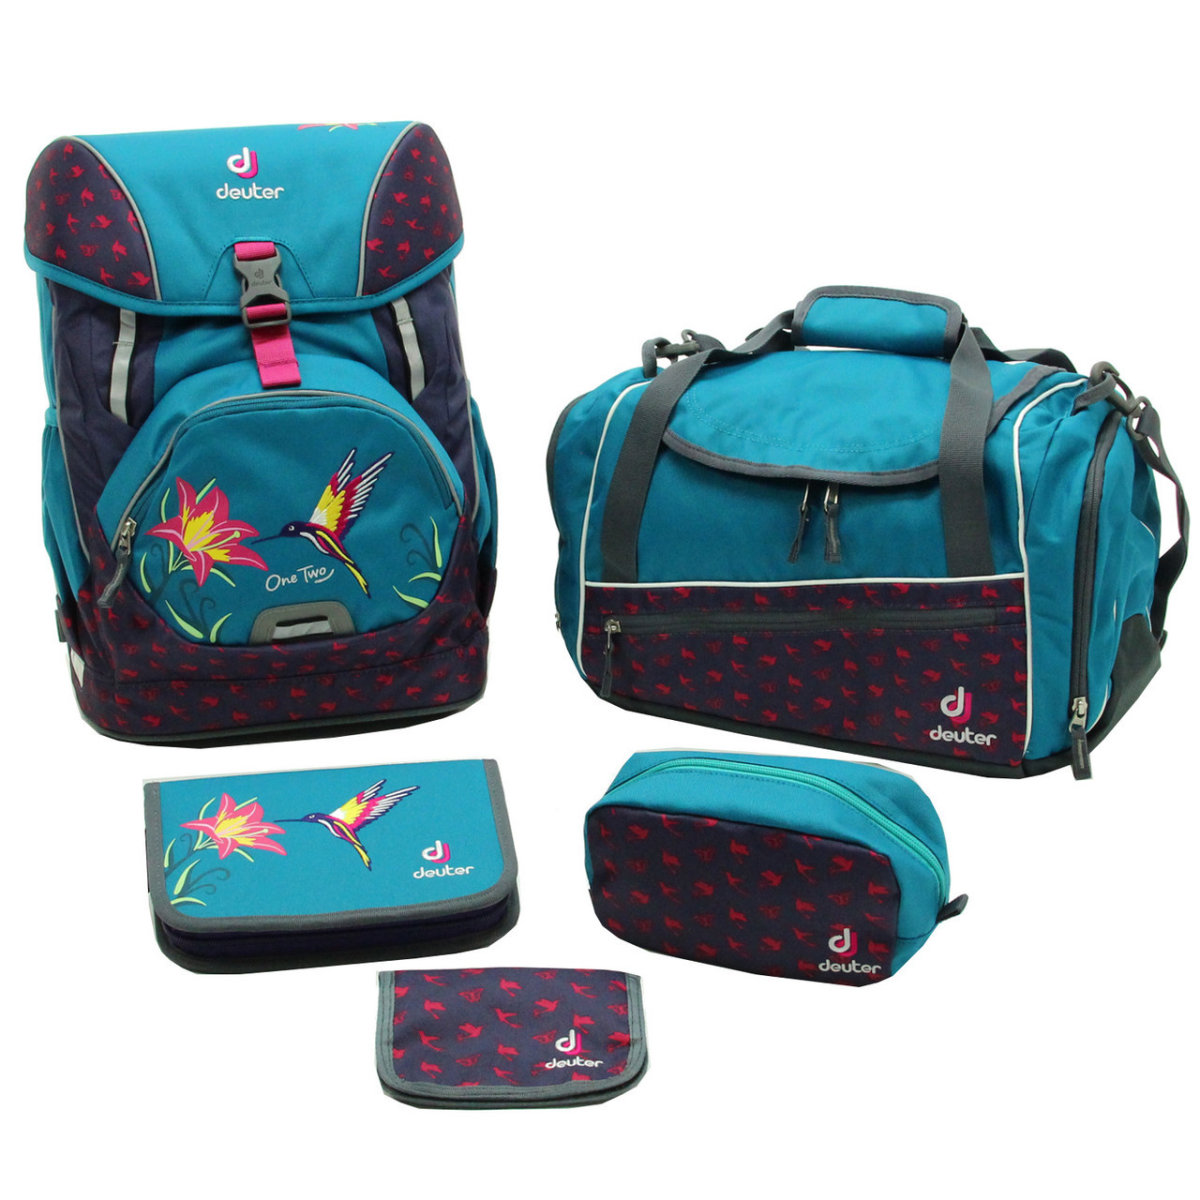 Набор сумок Deuter OneTwo Set - Hopper petrol bird 3880117 3044 (SET)